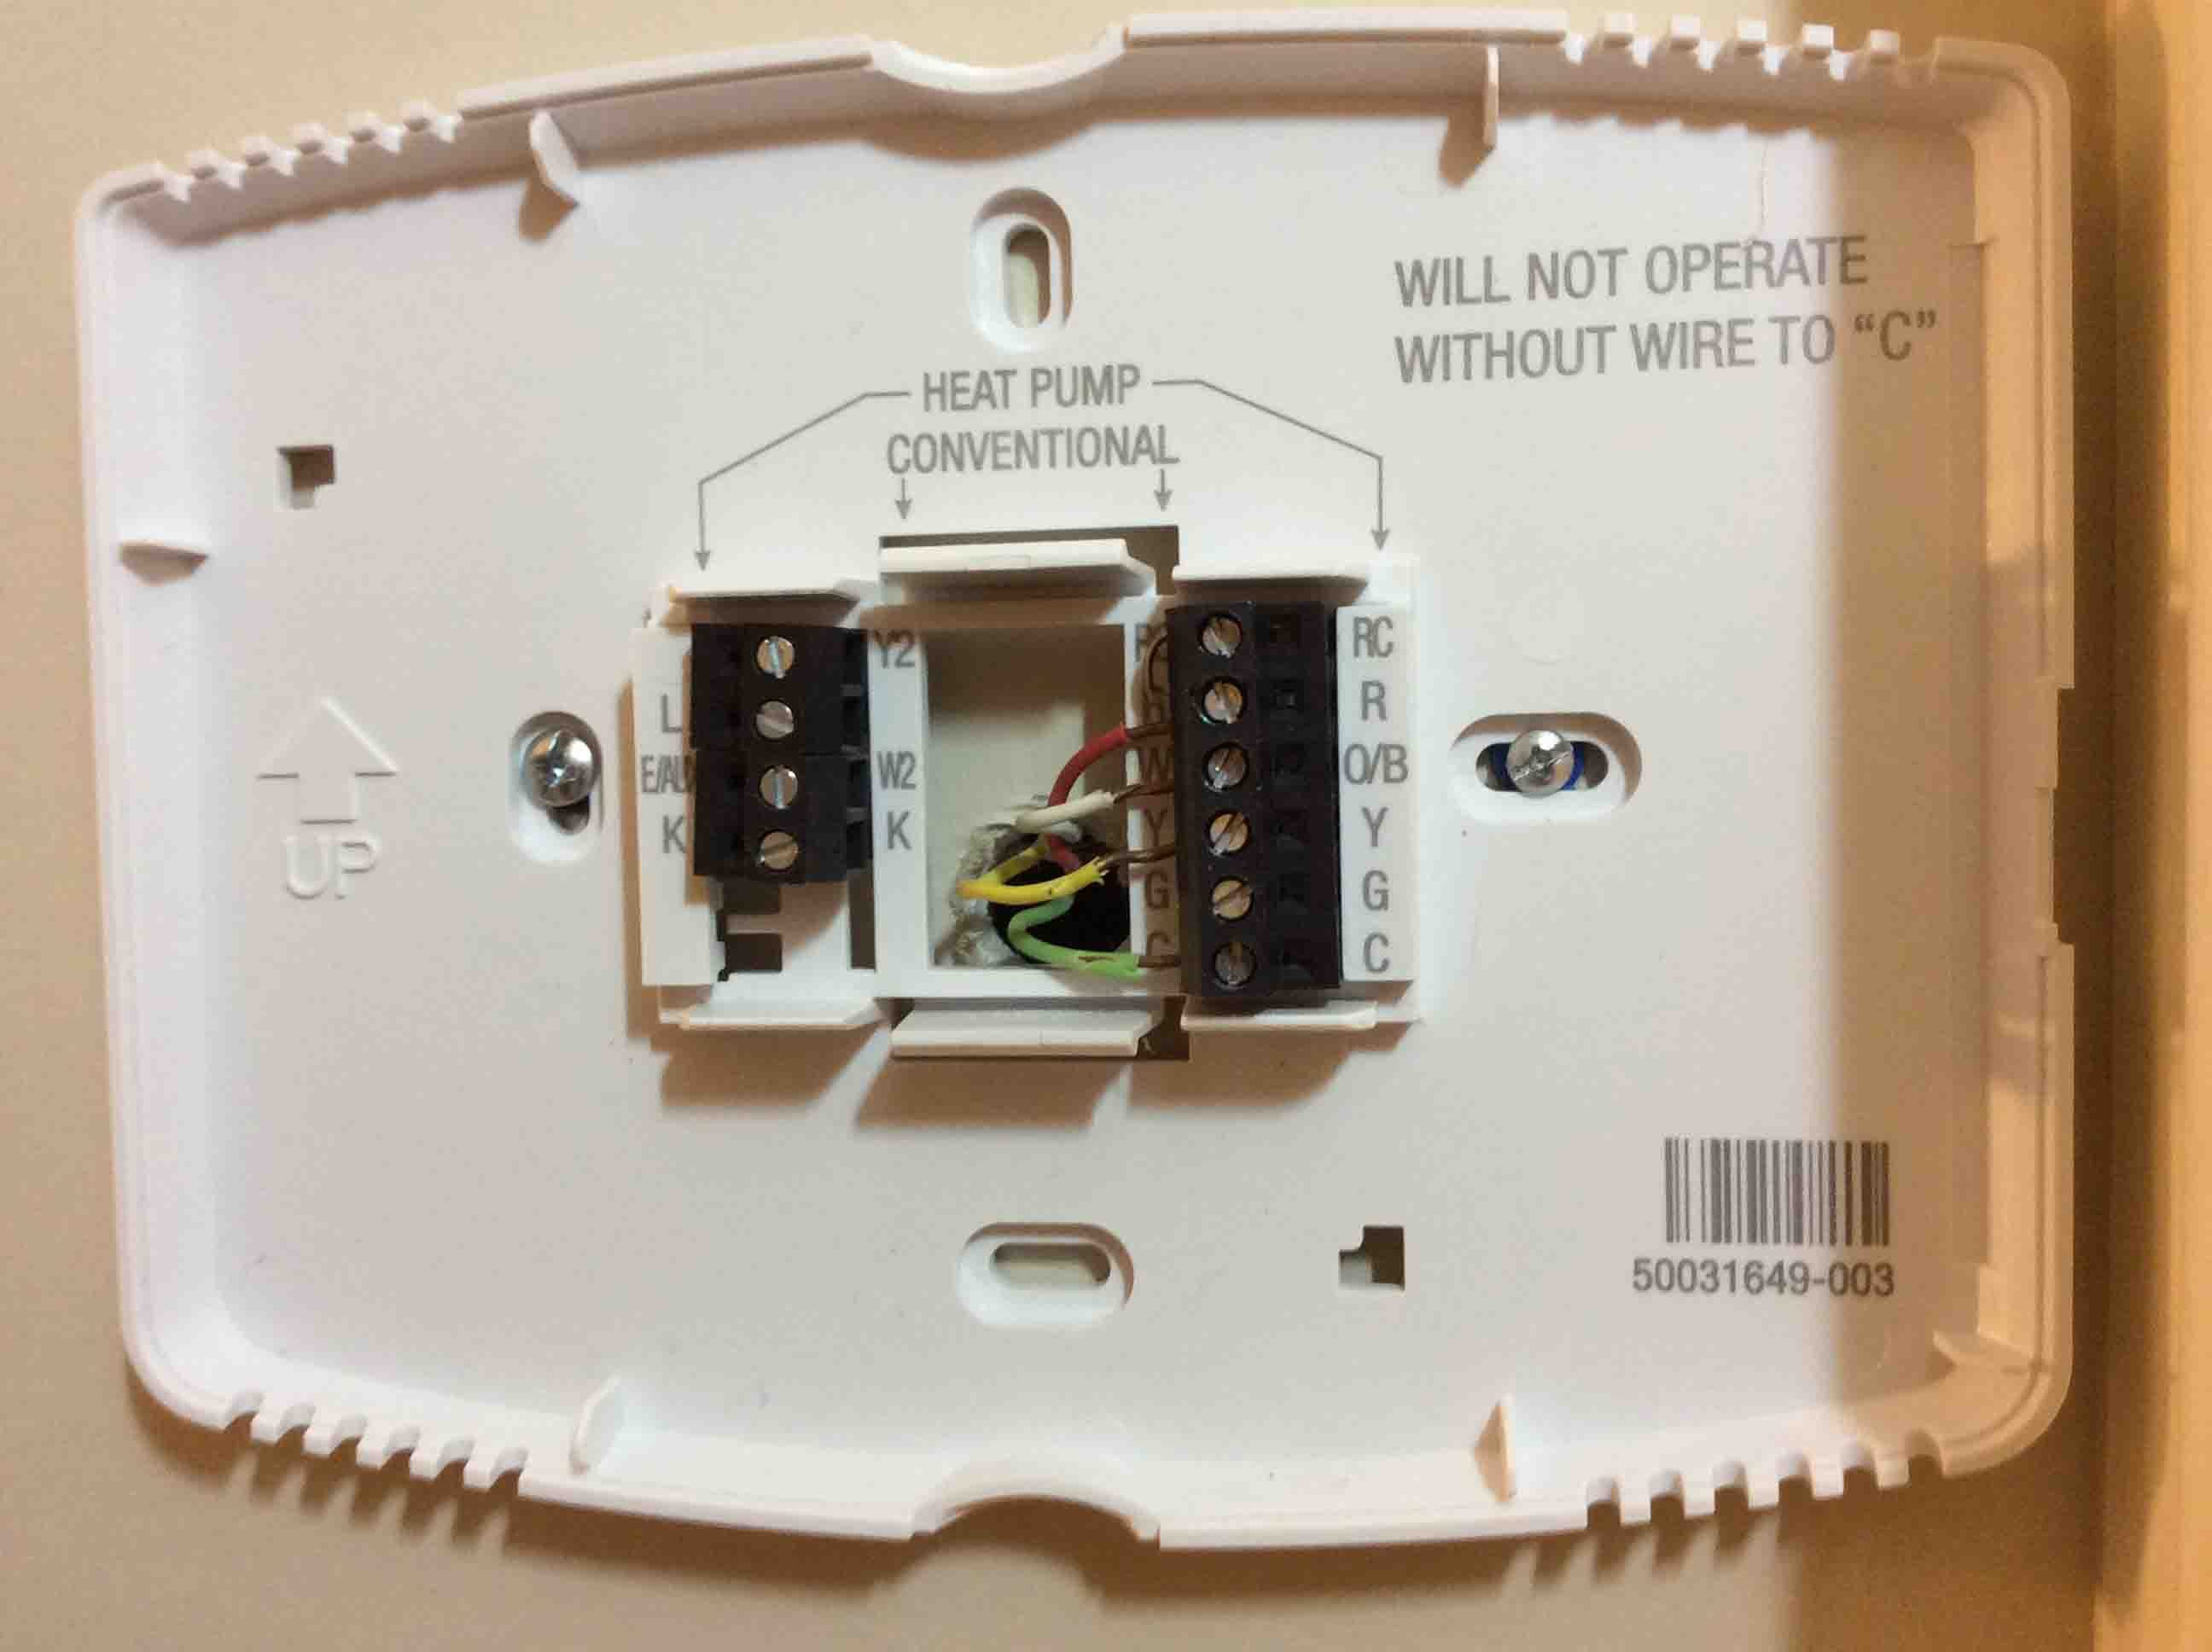 Honeywell Thermostat Wiring Diagram 4 Wire | Tom's Tek Stop - 4 Wire Thermostat Wiring Diagram